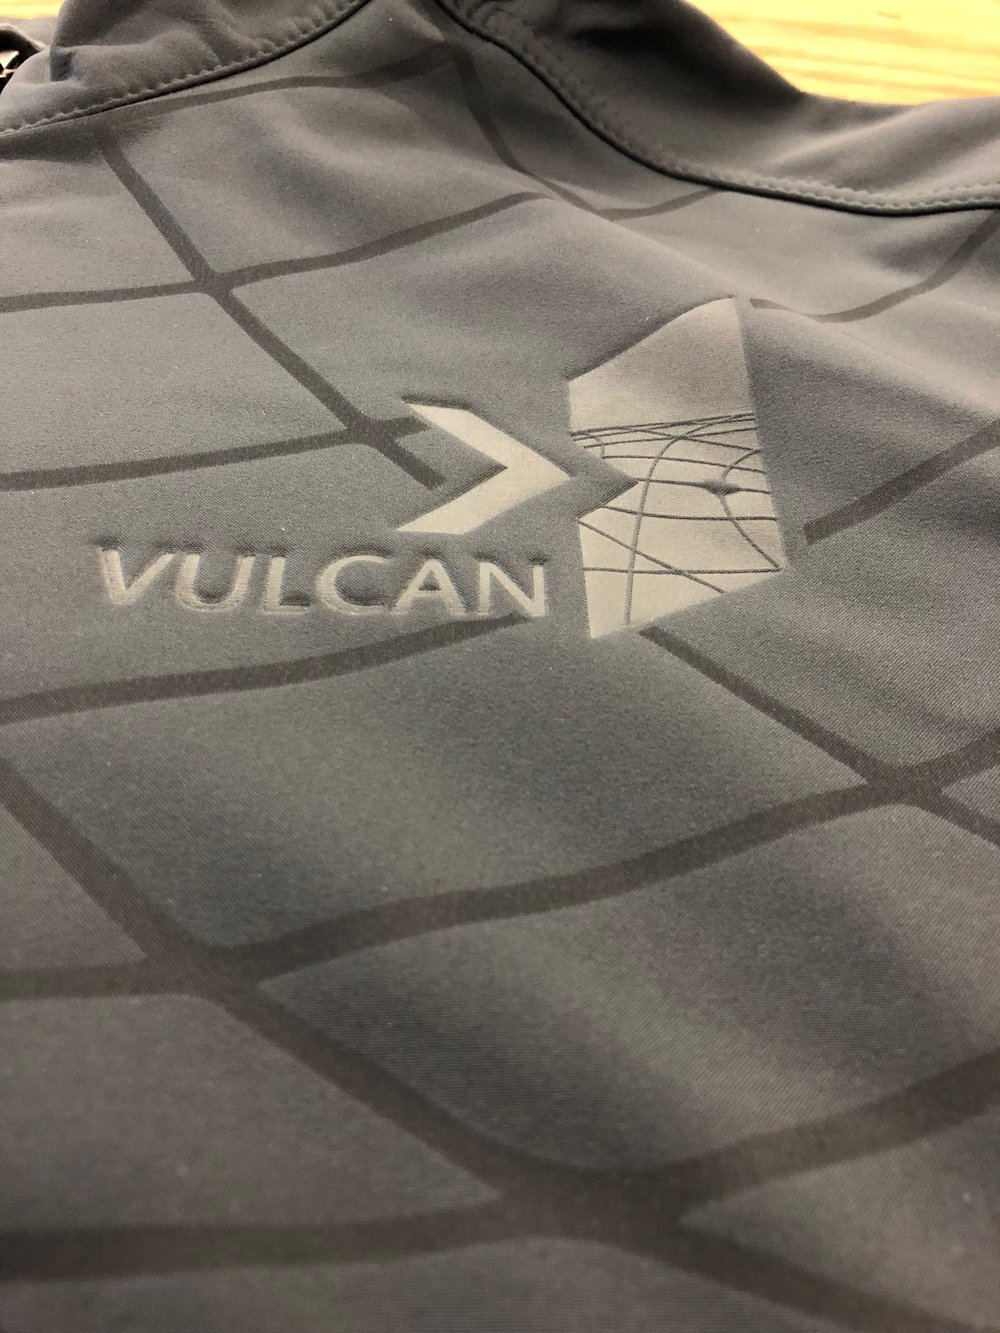 logounltd_laser_etching_embroidery_screen_printing_corporate_apparel_uniform_custom_tshirts_uniforms_dye_sublimation_kirkland_bellevue_seattle_redmond_branded_merchandise_promotional_products (29).jpg